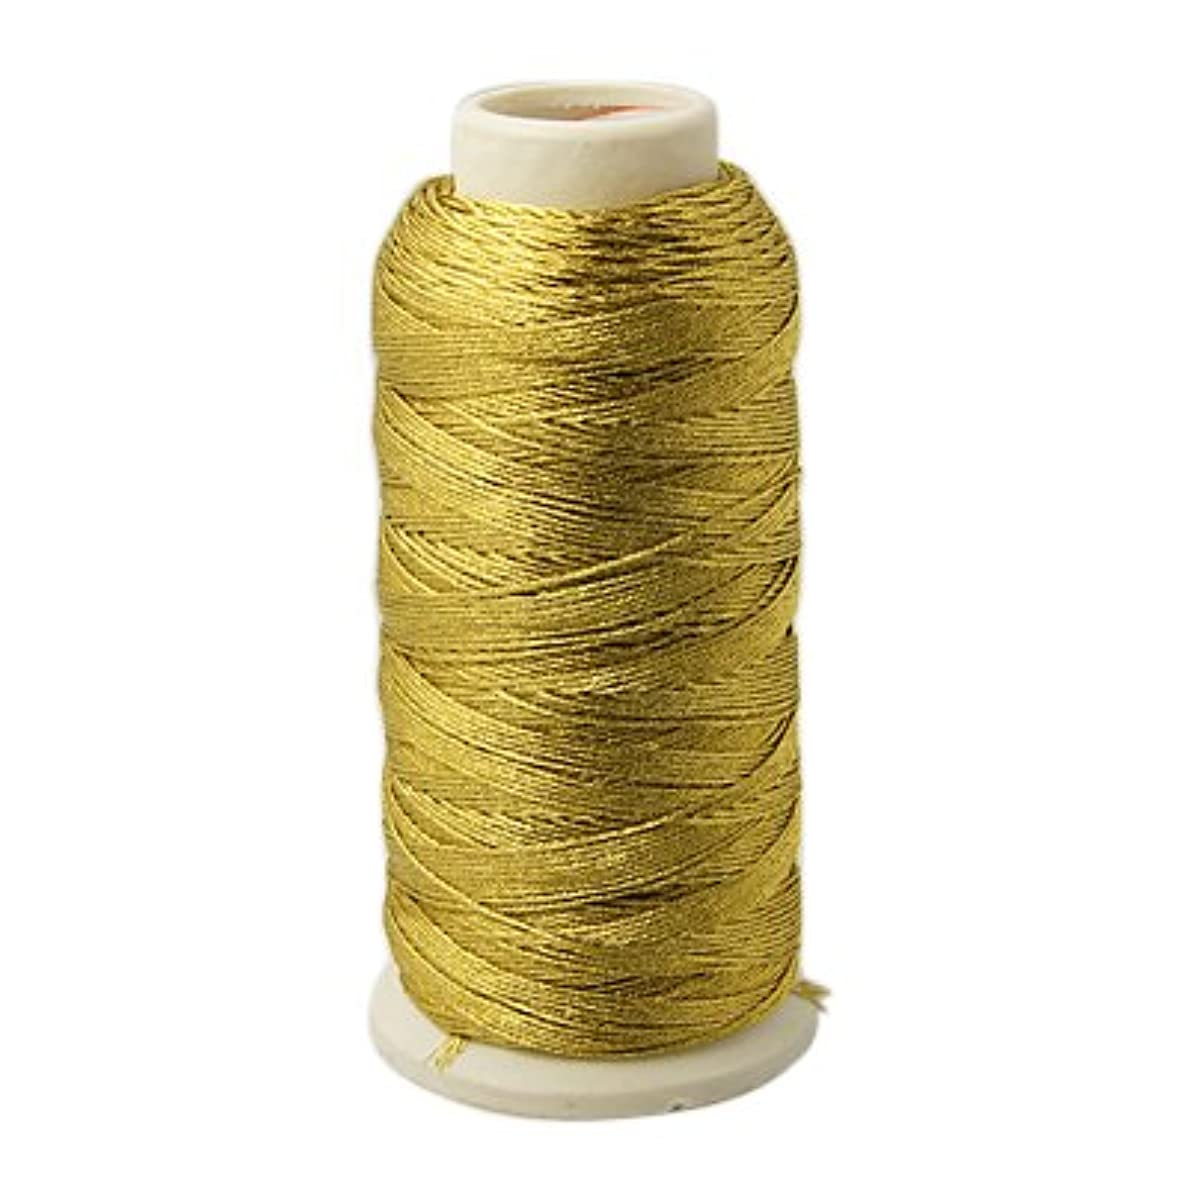 PEPPERLONELY Brand Non-Stretch Gold Metallic Cord 1mm 180M/Roll (apprx. 197 Yard)